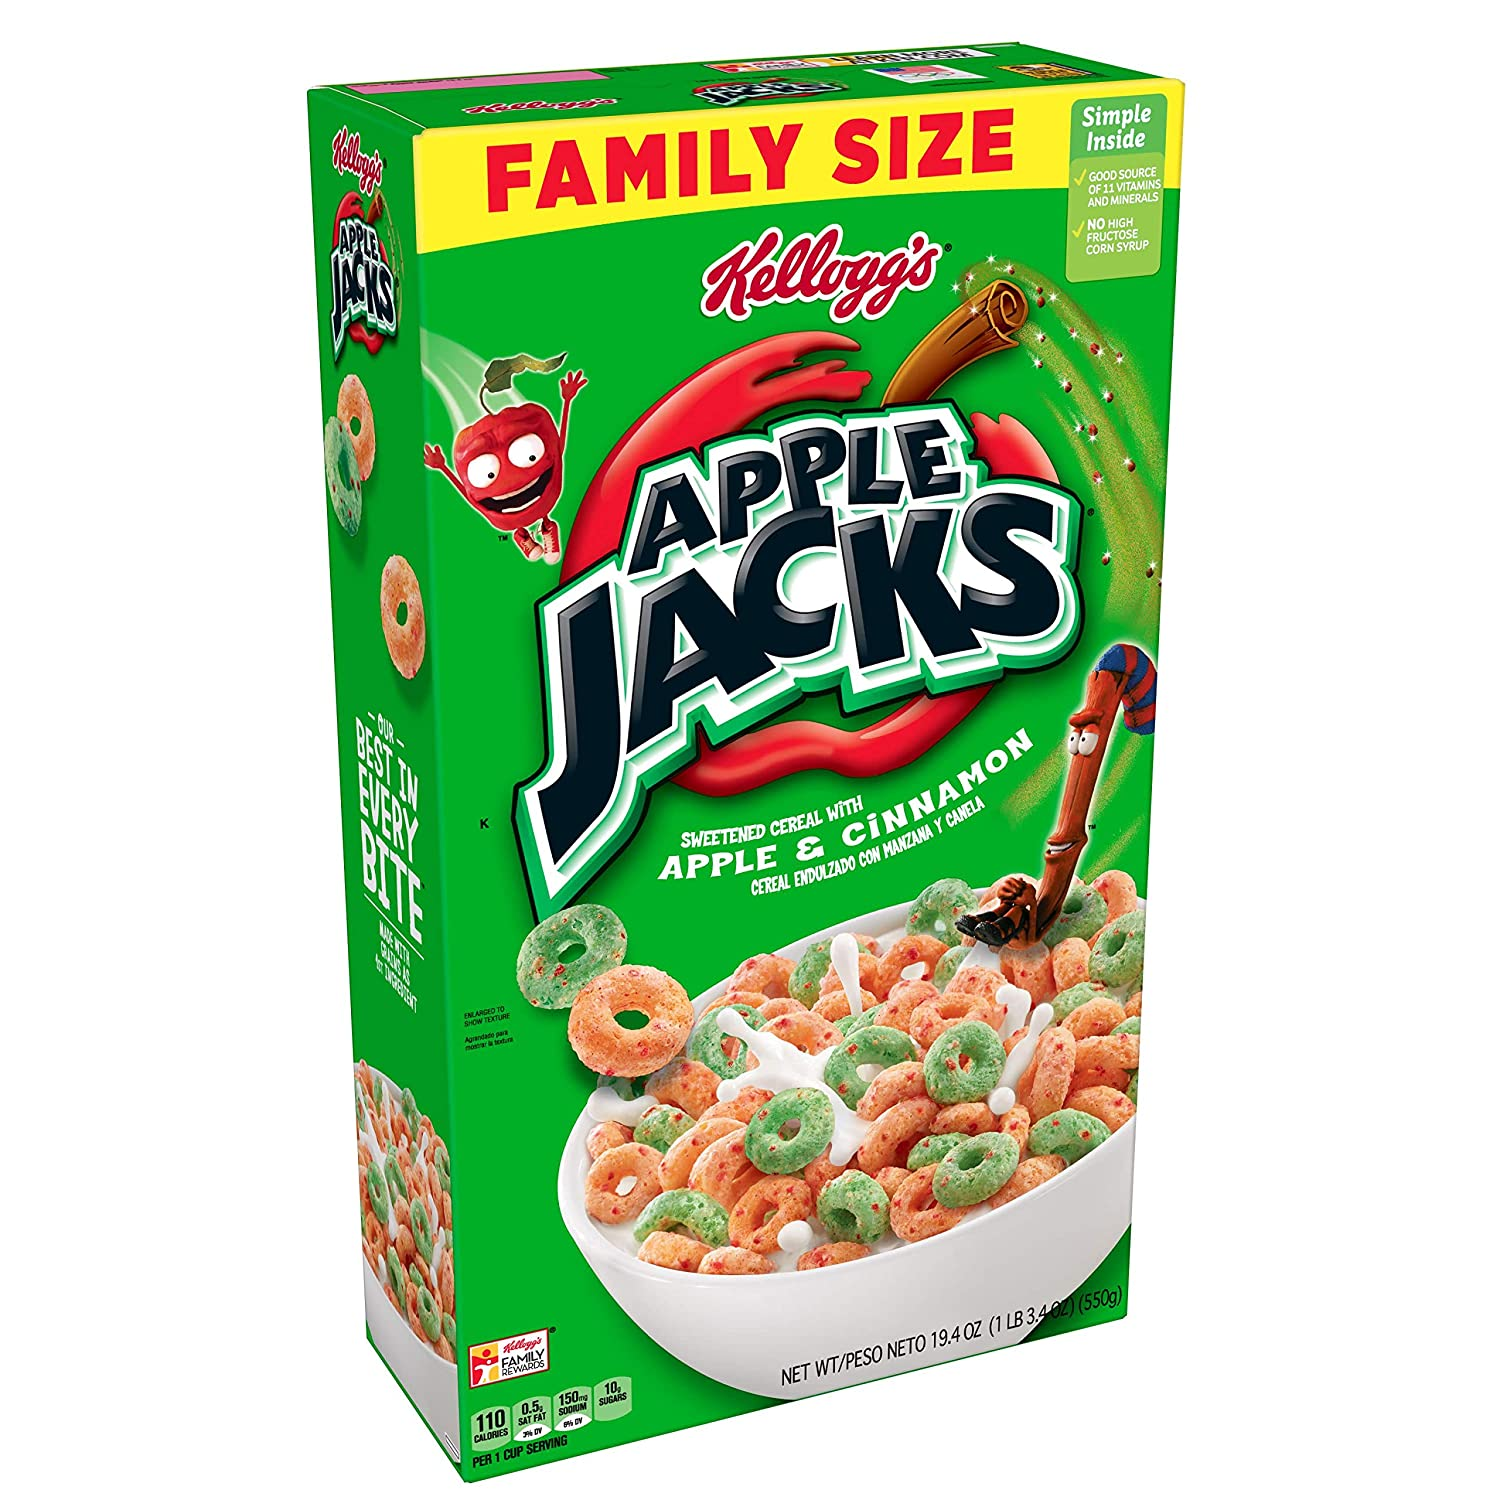 Kellogg's Apple Jacks, Breakfast Cereal, Original, Good Source of 8 Vitamins and Minerals, Family Size, 19.4oz Box